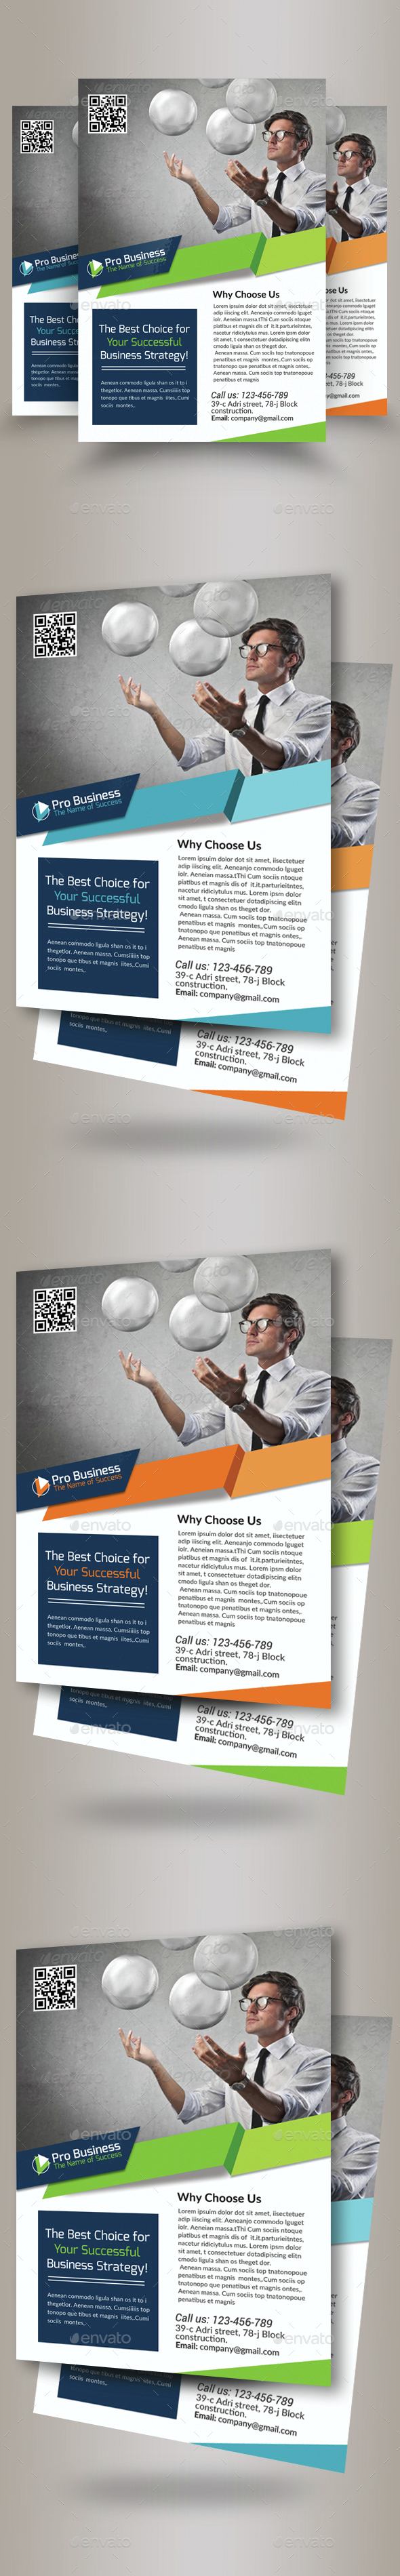 Business Solutions Consultant Flyer Template - Corporate Flyers